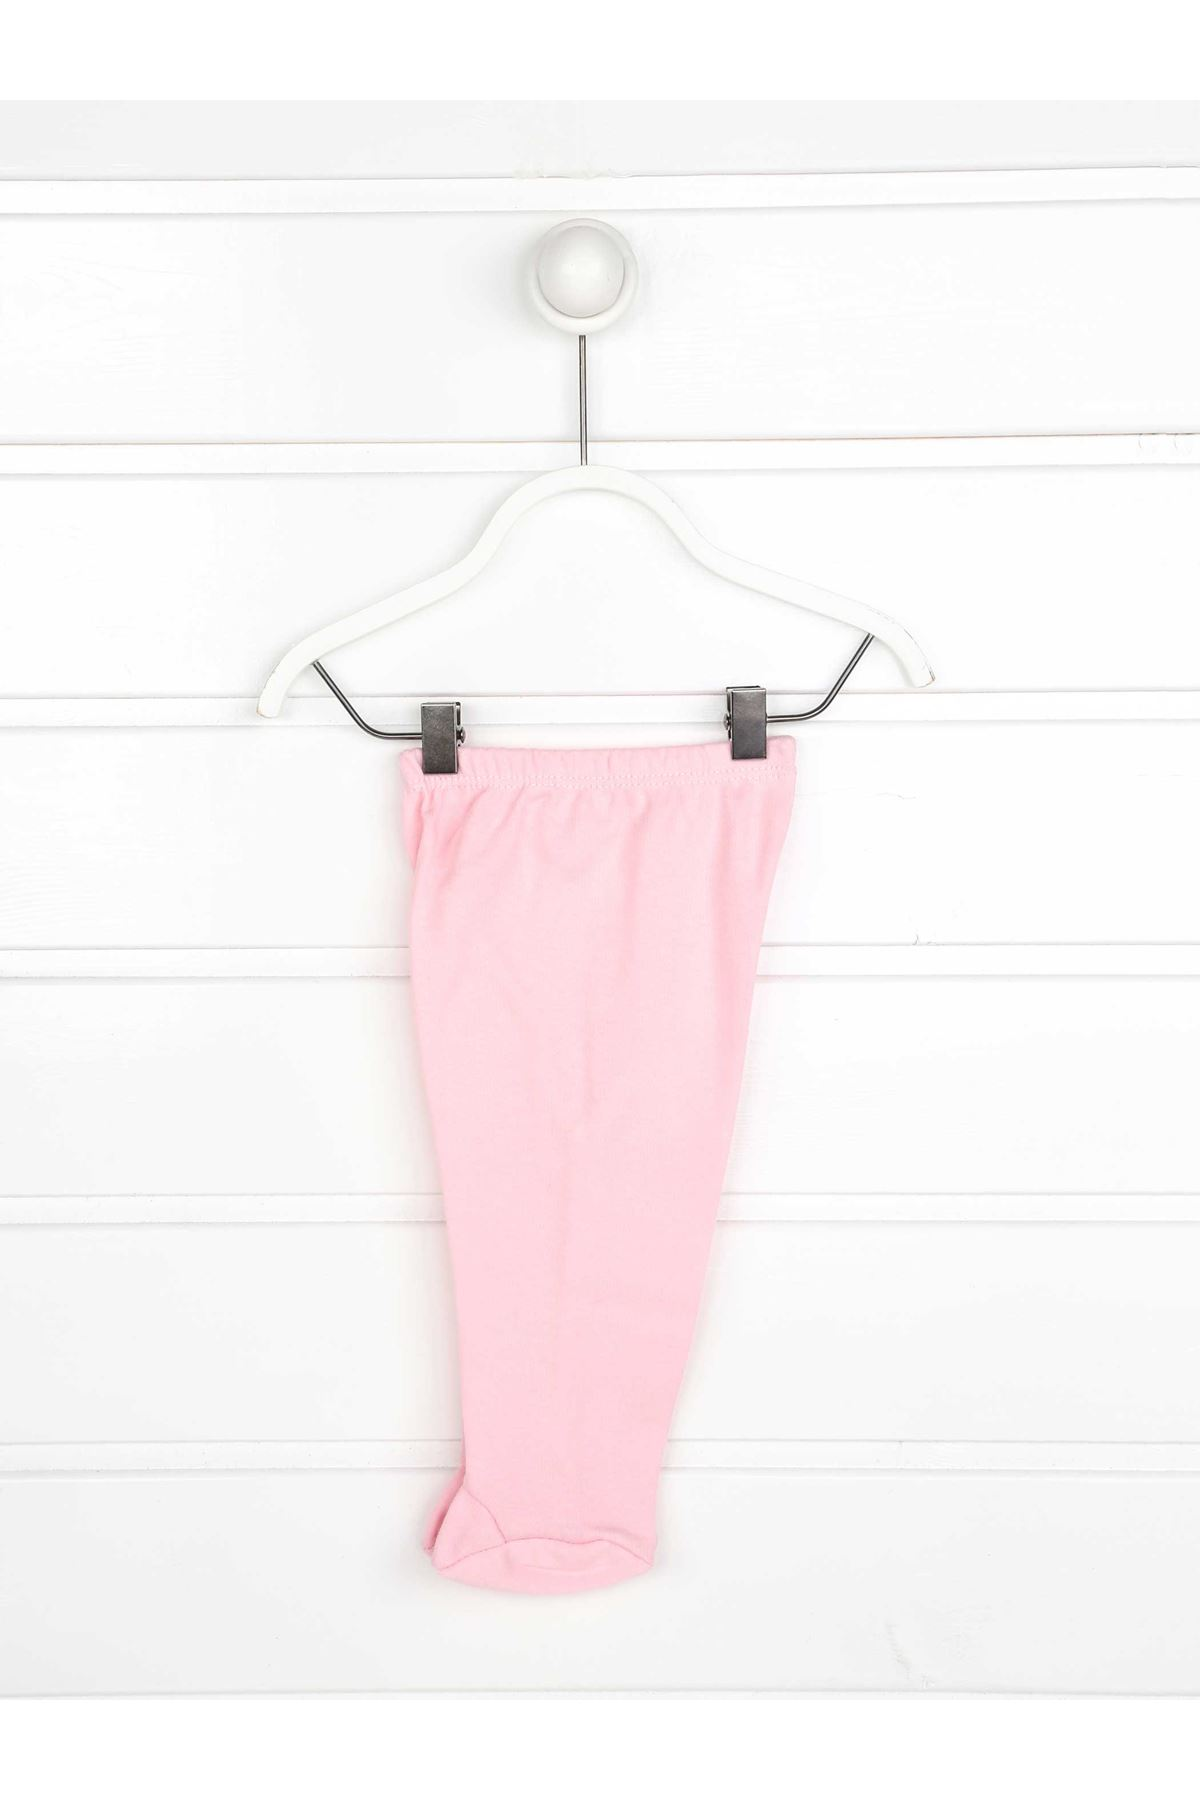 Pink Swaddle Gloved Baby Girl 3 Pcs The Zibin team